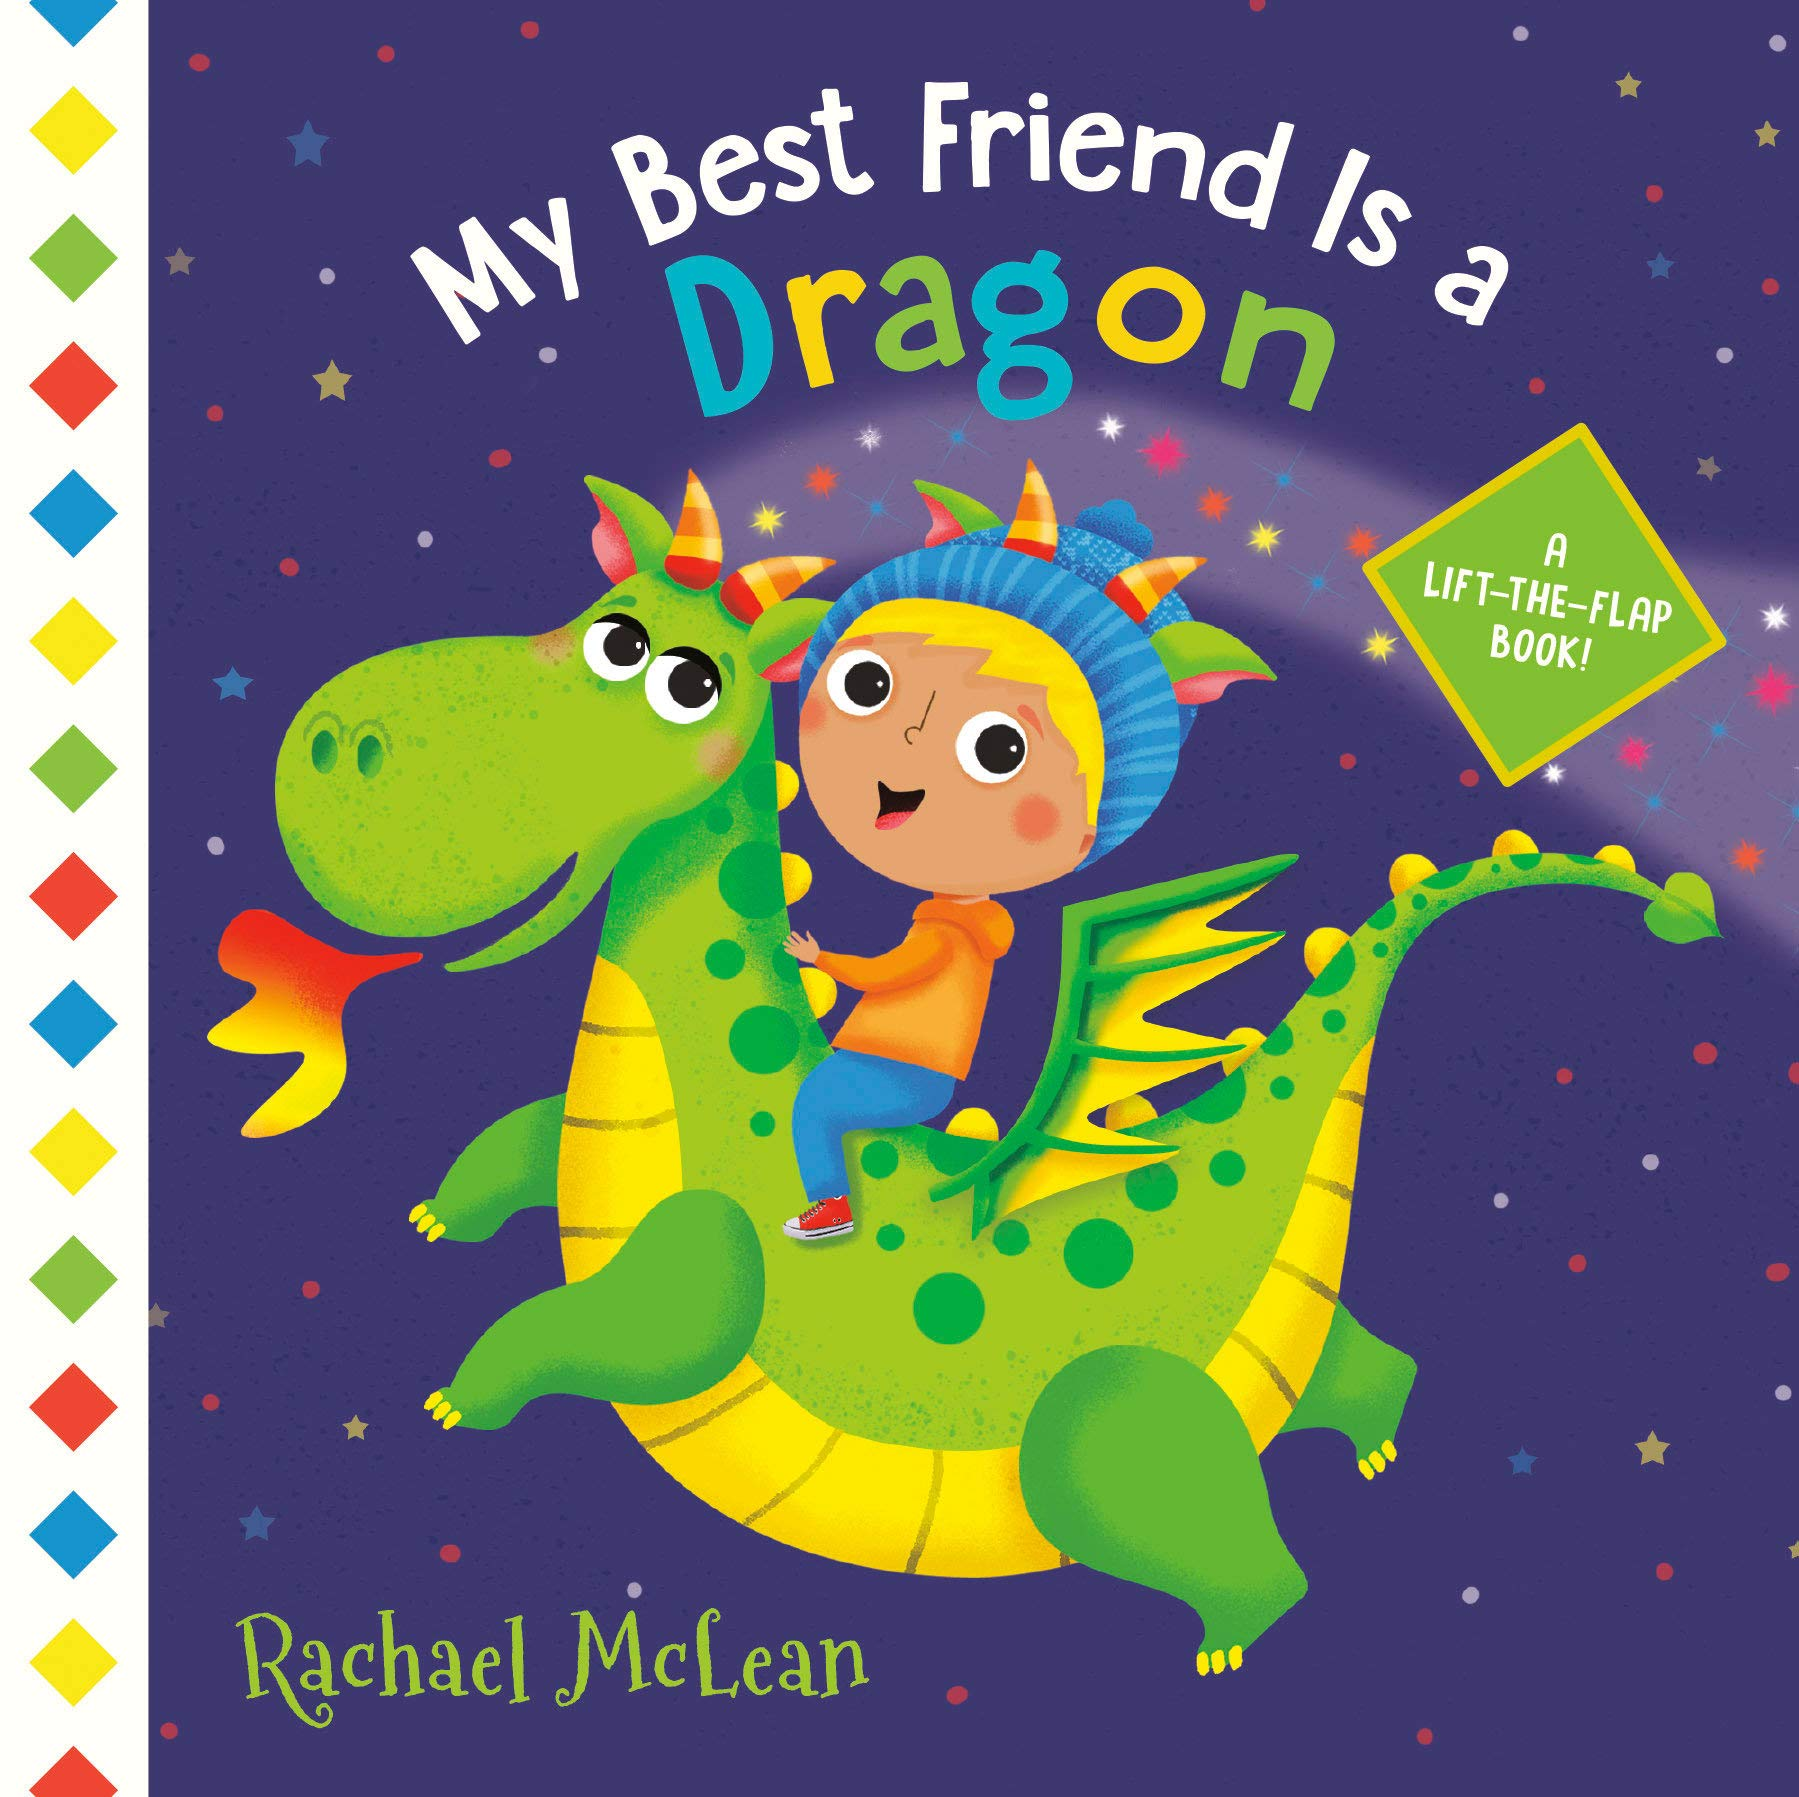 My Best Friend Is a Dragon: A Lift-the-Flap